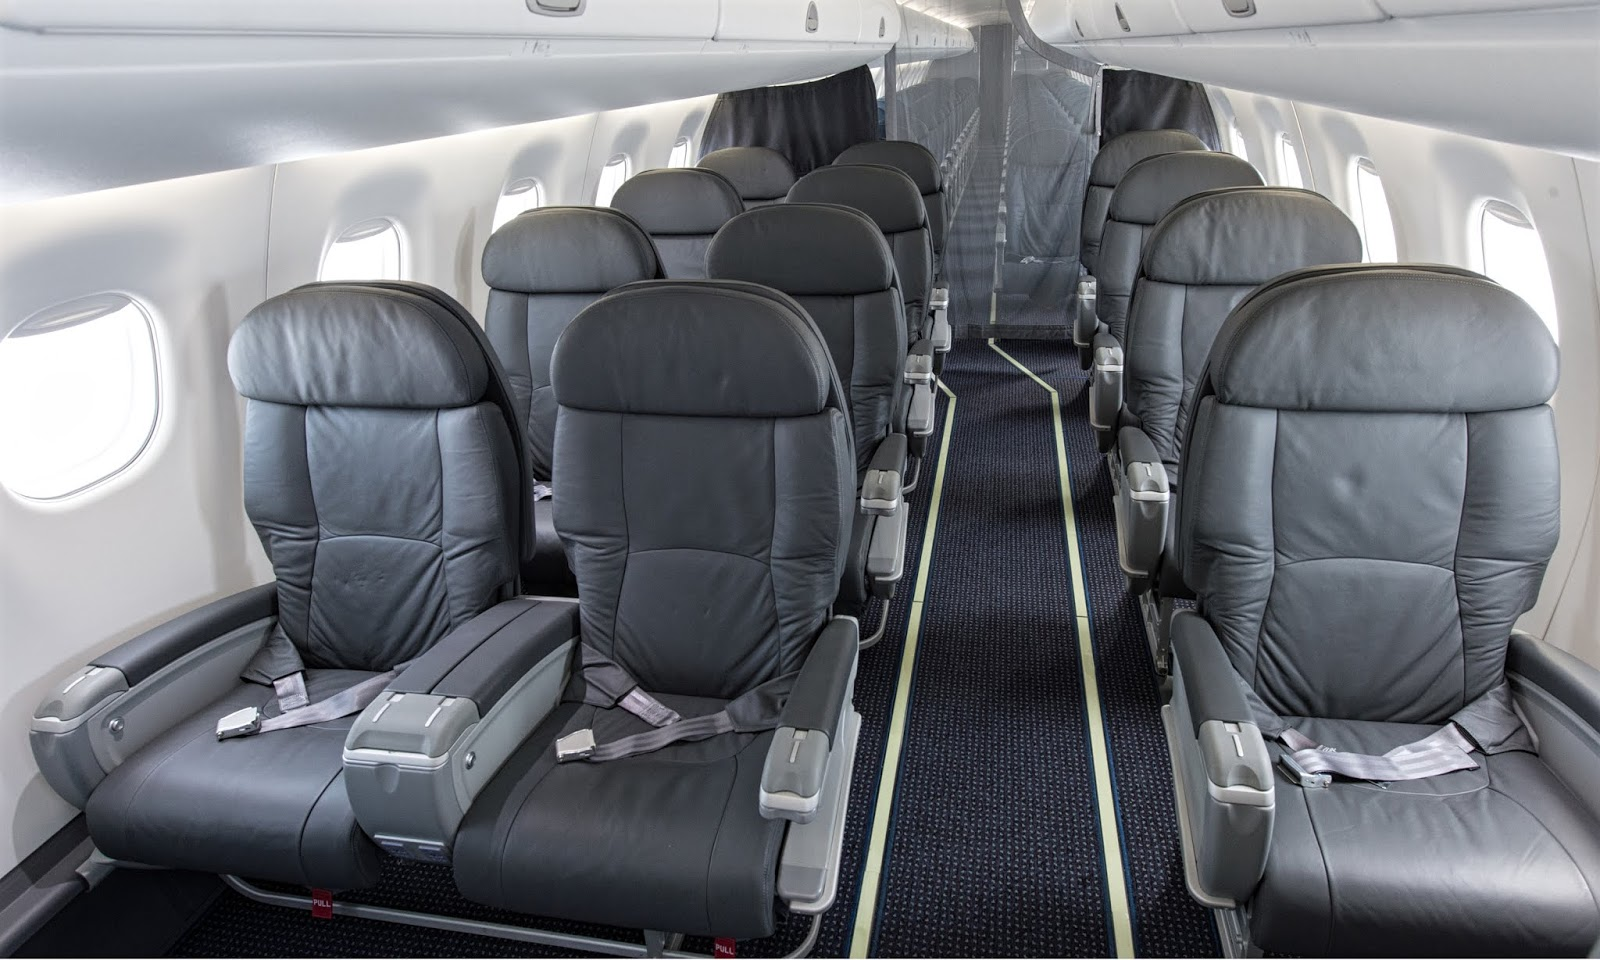 American Airlines E-175 First Class Seating Layout